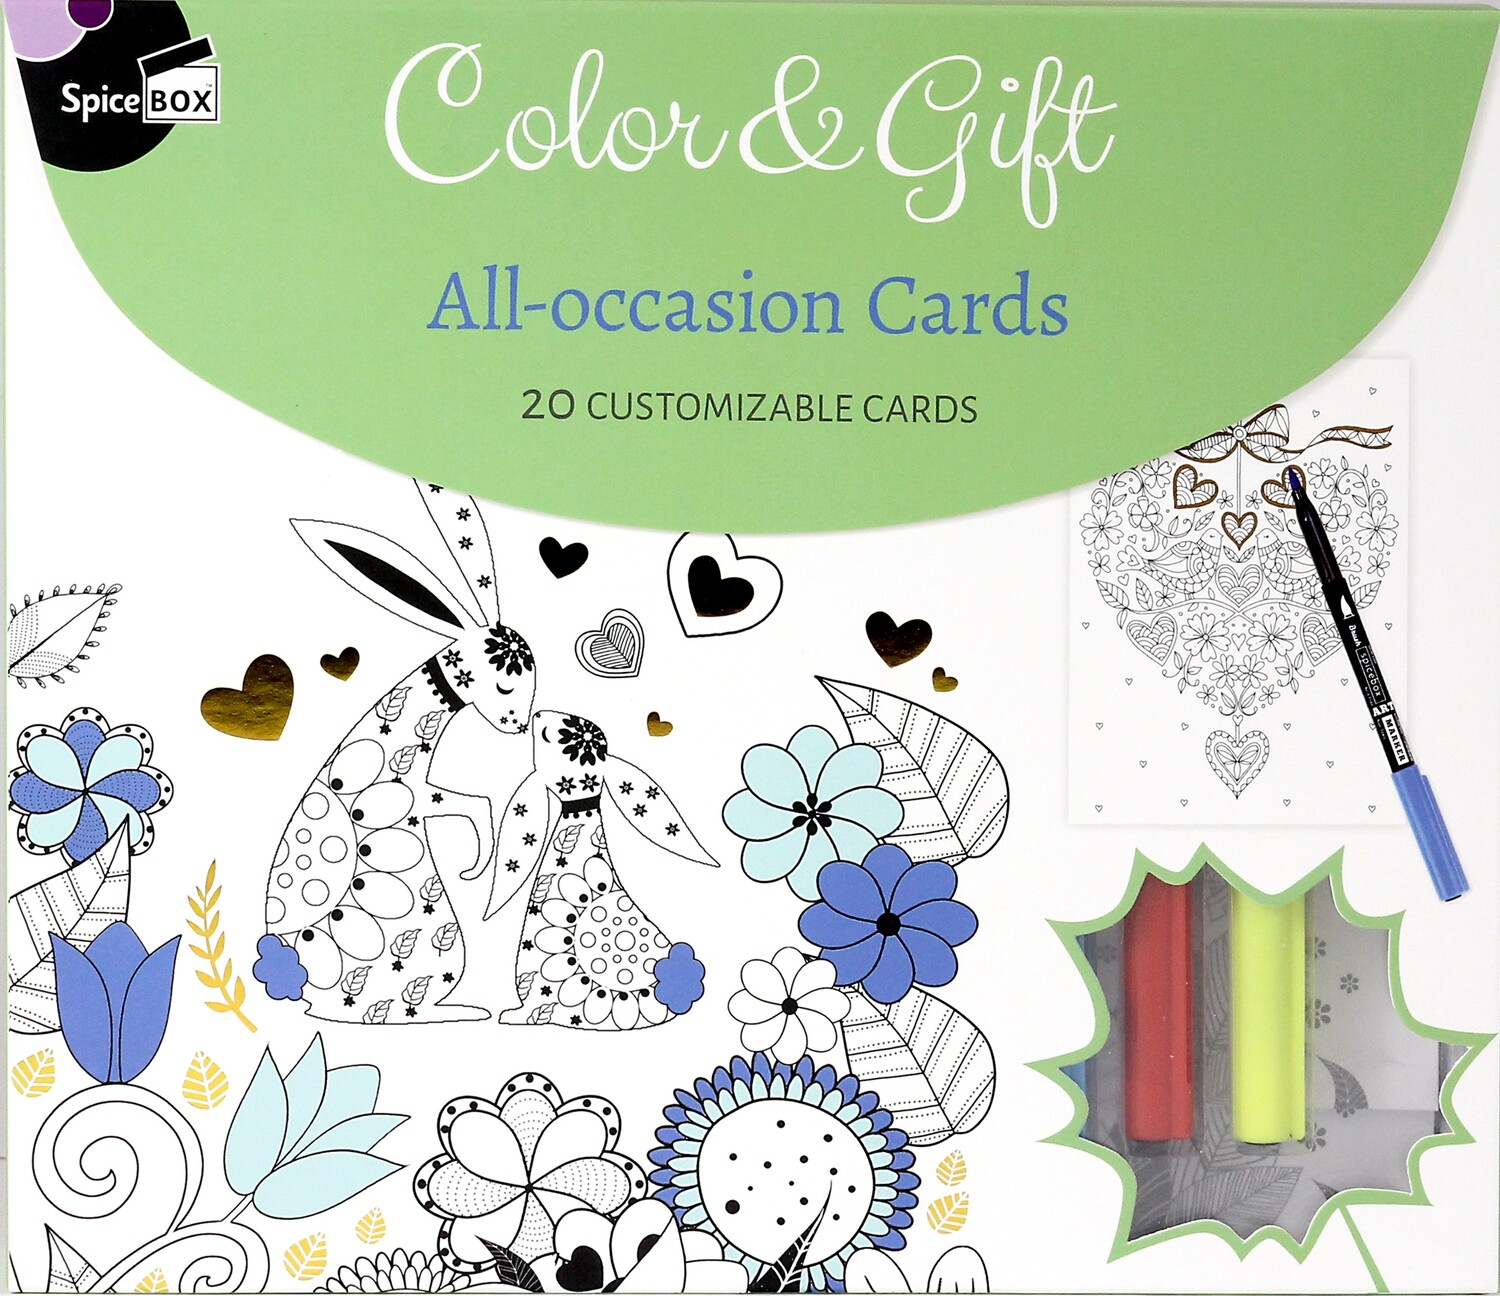 Cards 20 All Occasion 20 Customizable Cards